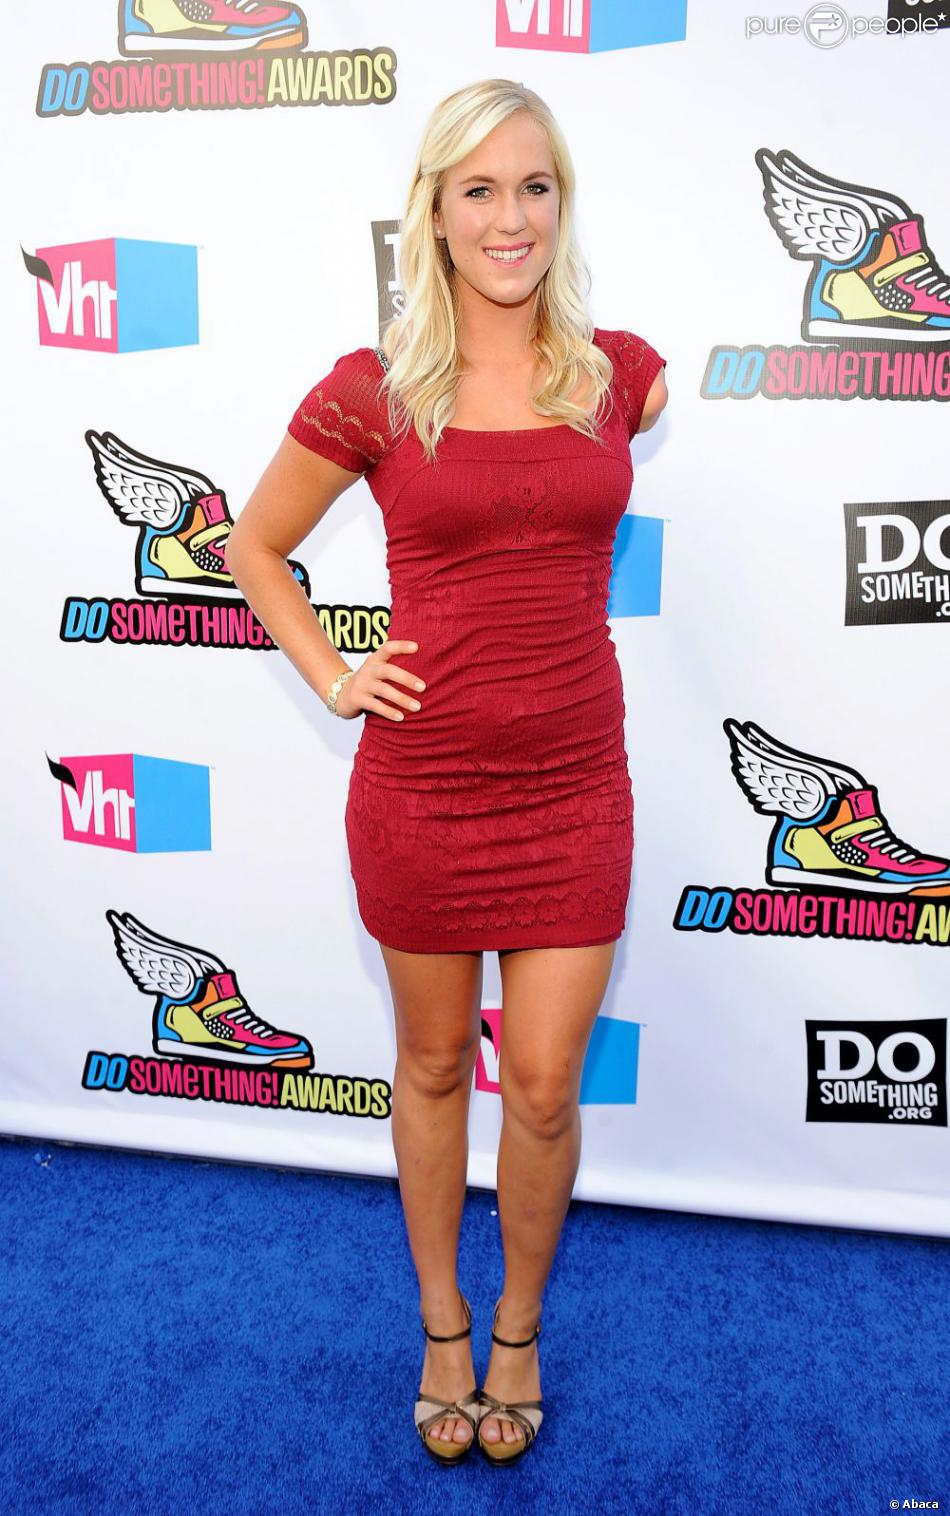 Bethany Hamilton en août 2011 aux Do Something Awards à Hollywood